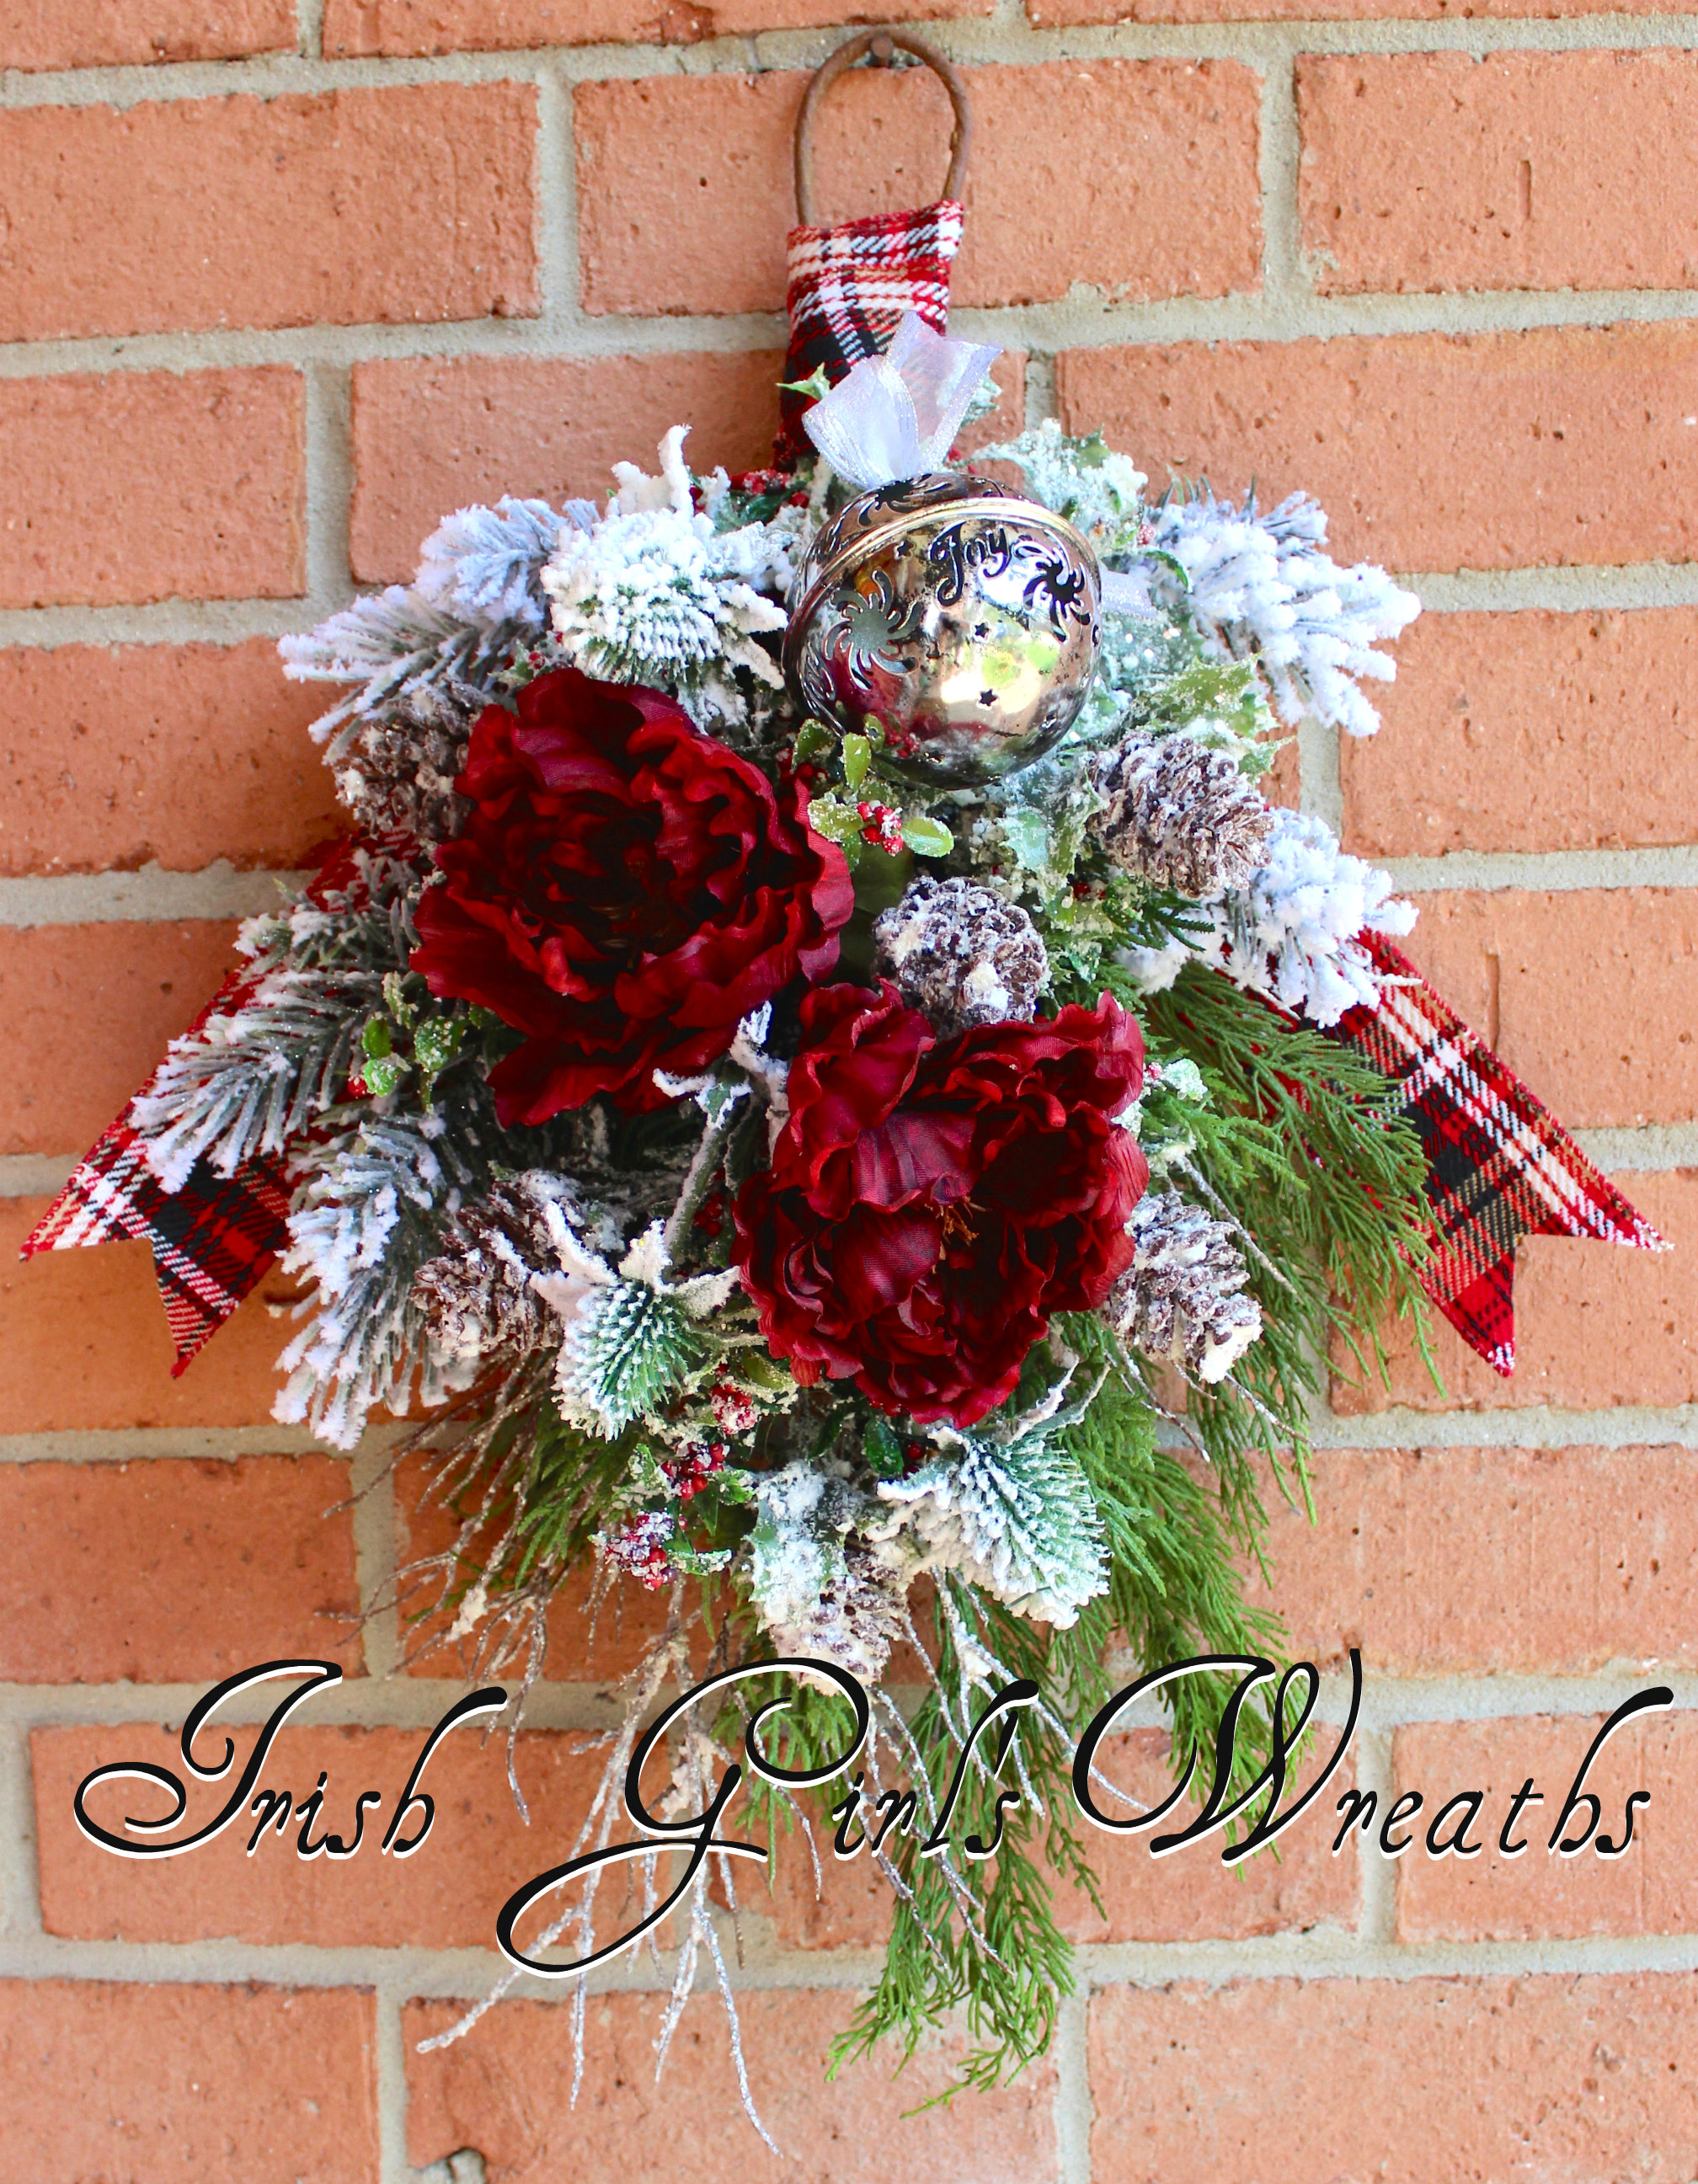 Rustic Winter Burgundy Floral Swag Wreath, Snowy Pine Woodland Christmas Floral Swag, Sleigh Bell